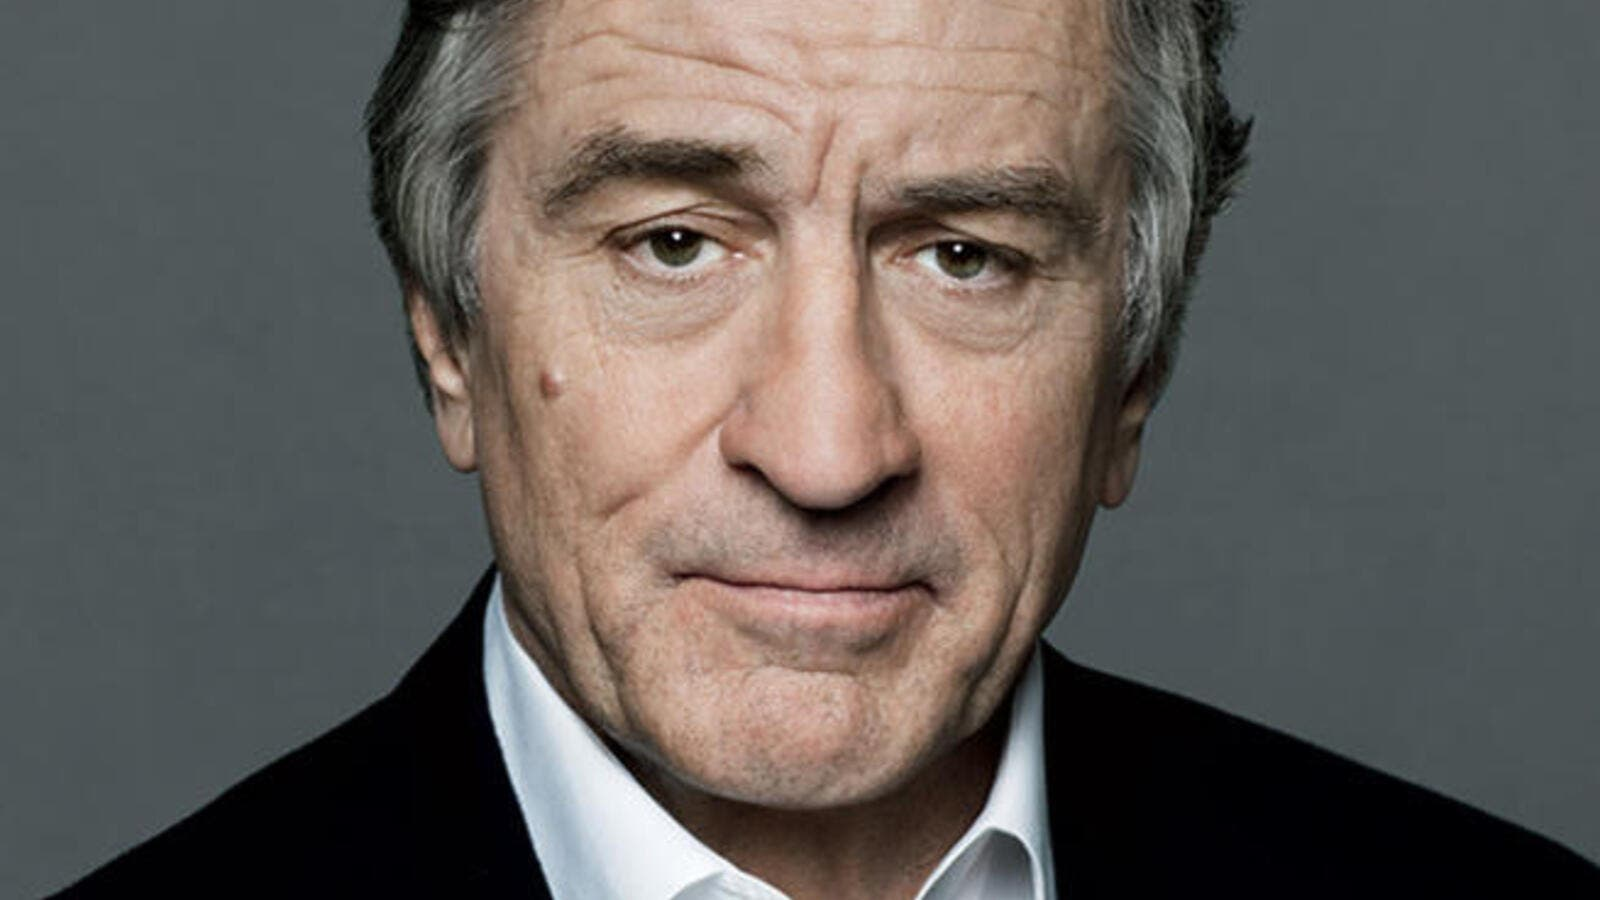 Robert De Niro co-founded the first Nobu restaurant in New York in 1994. (Facebook)